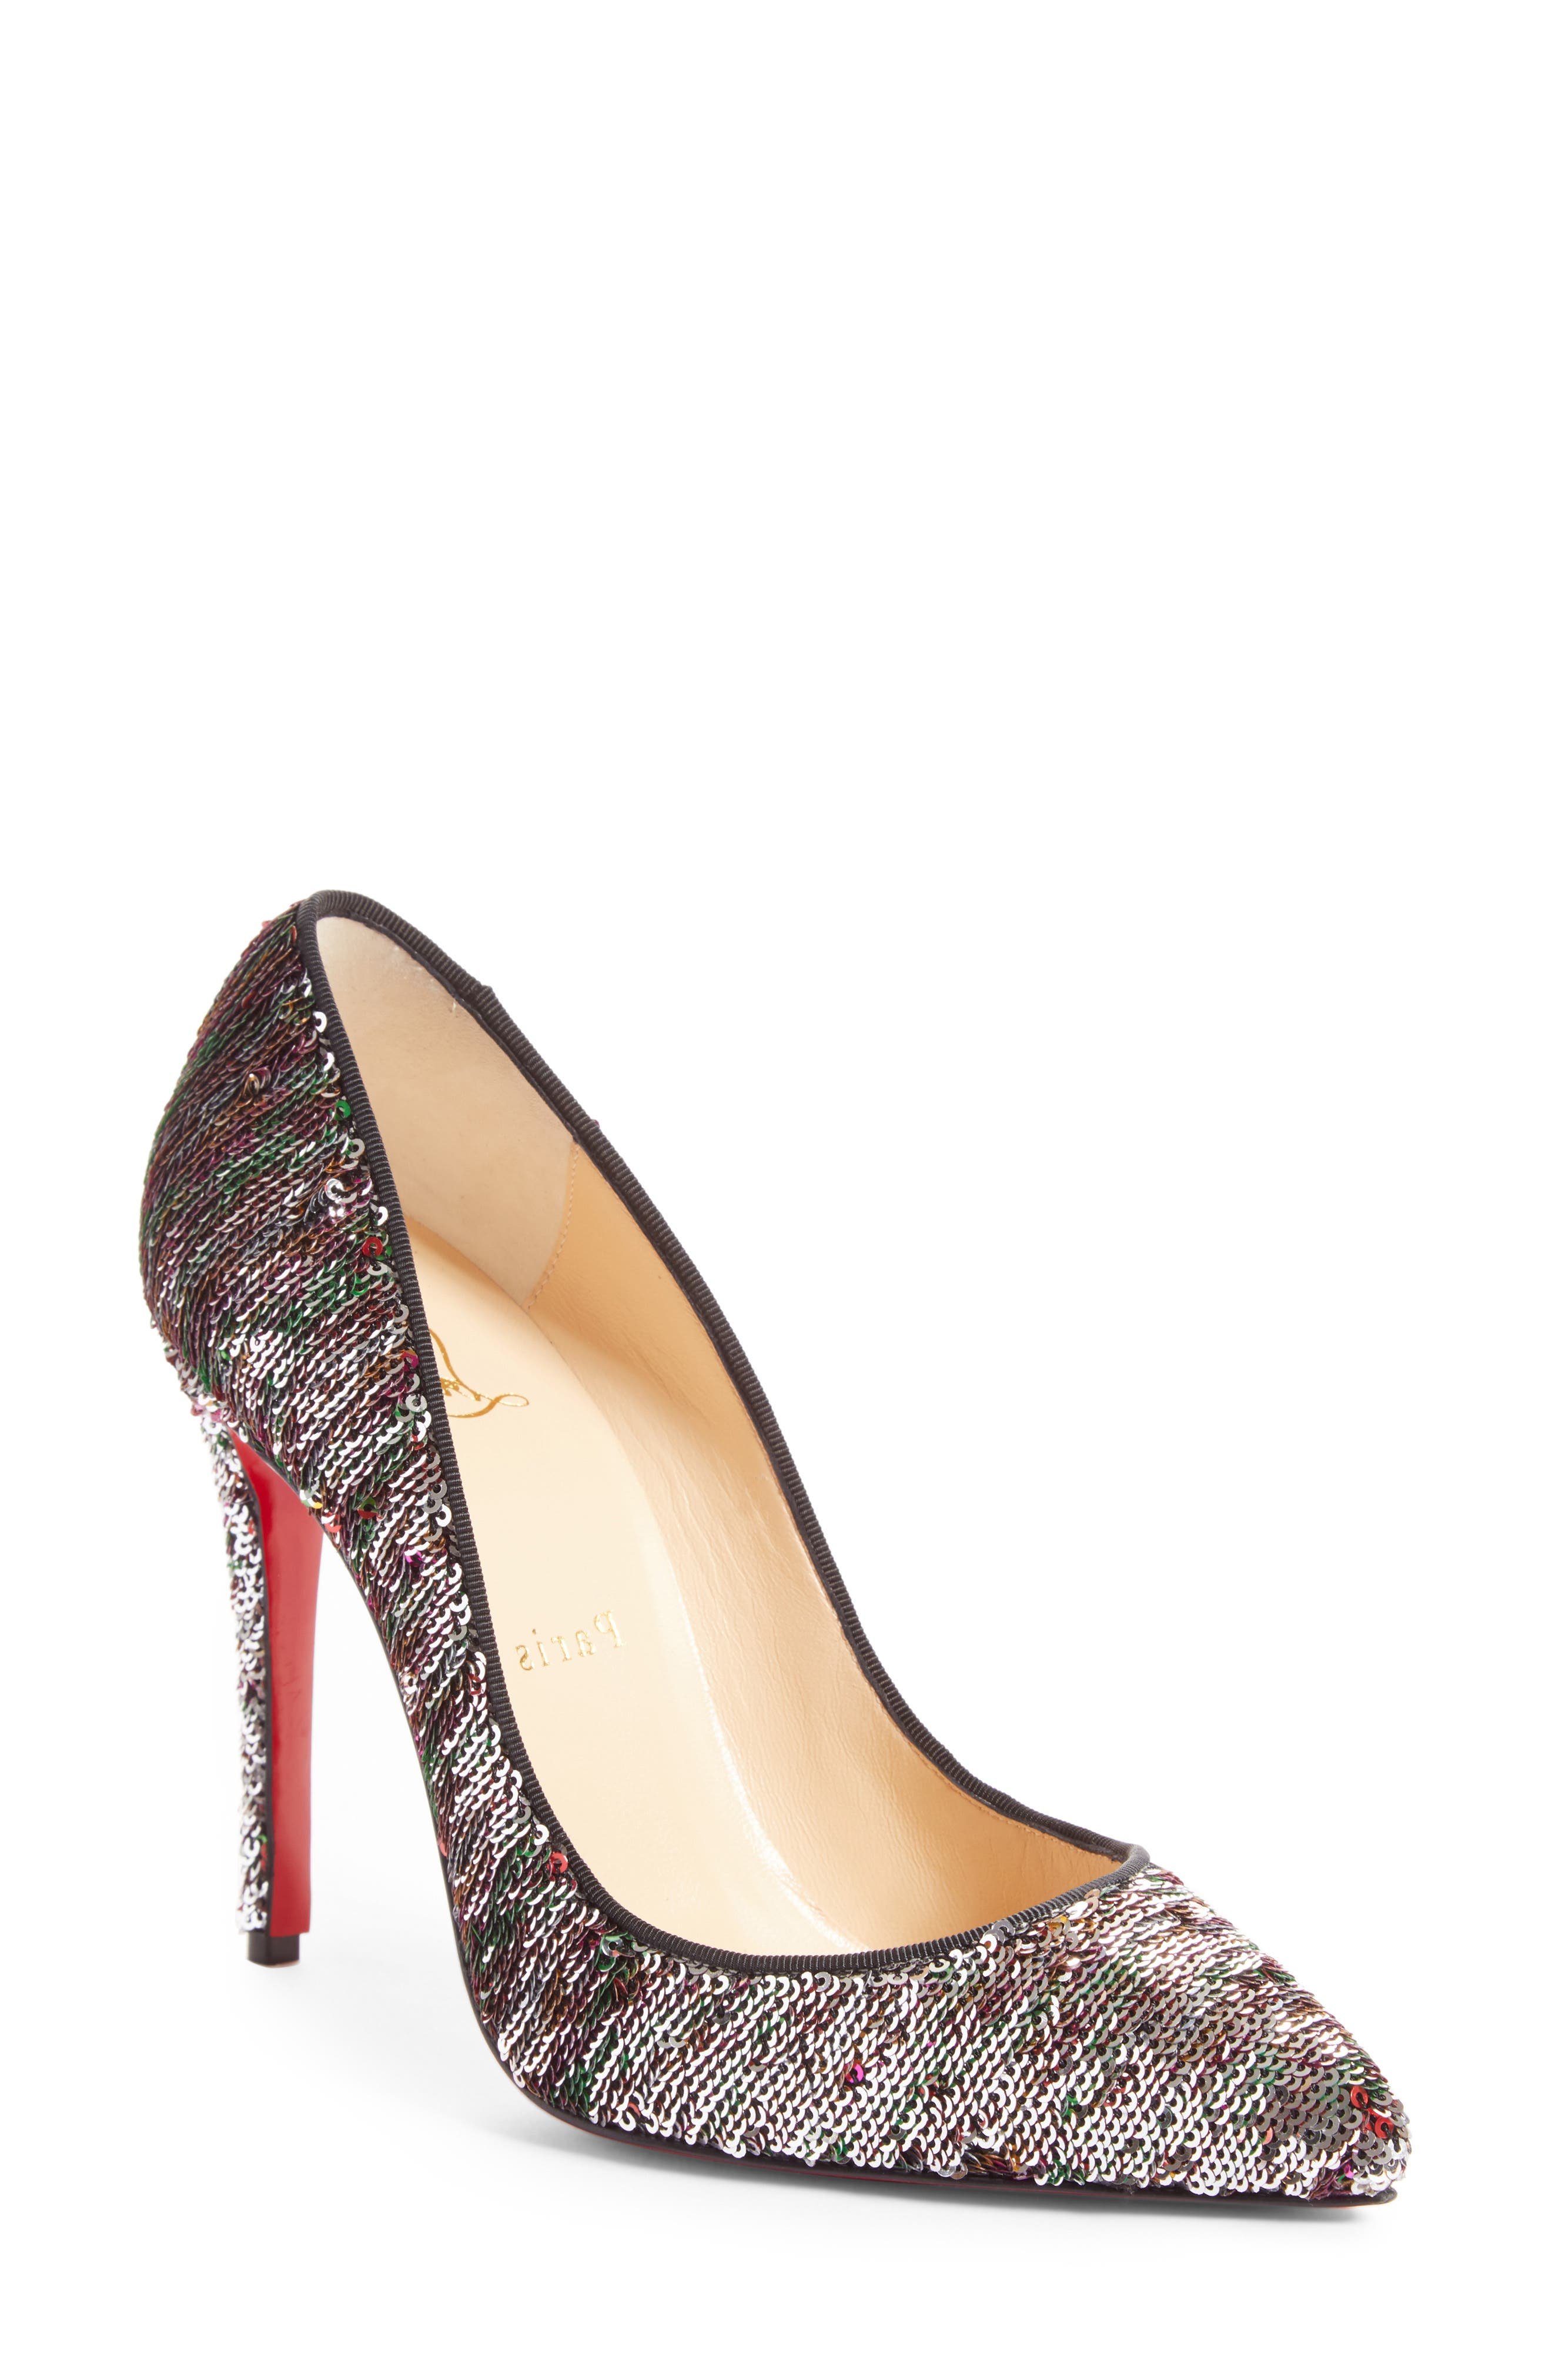 Pigalle Follies Sequin Pointy Toe Pump,                         Main,                         color,